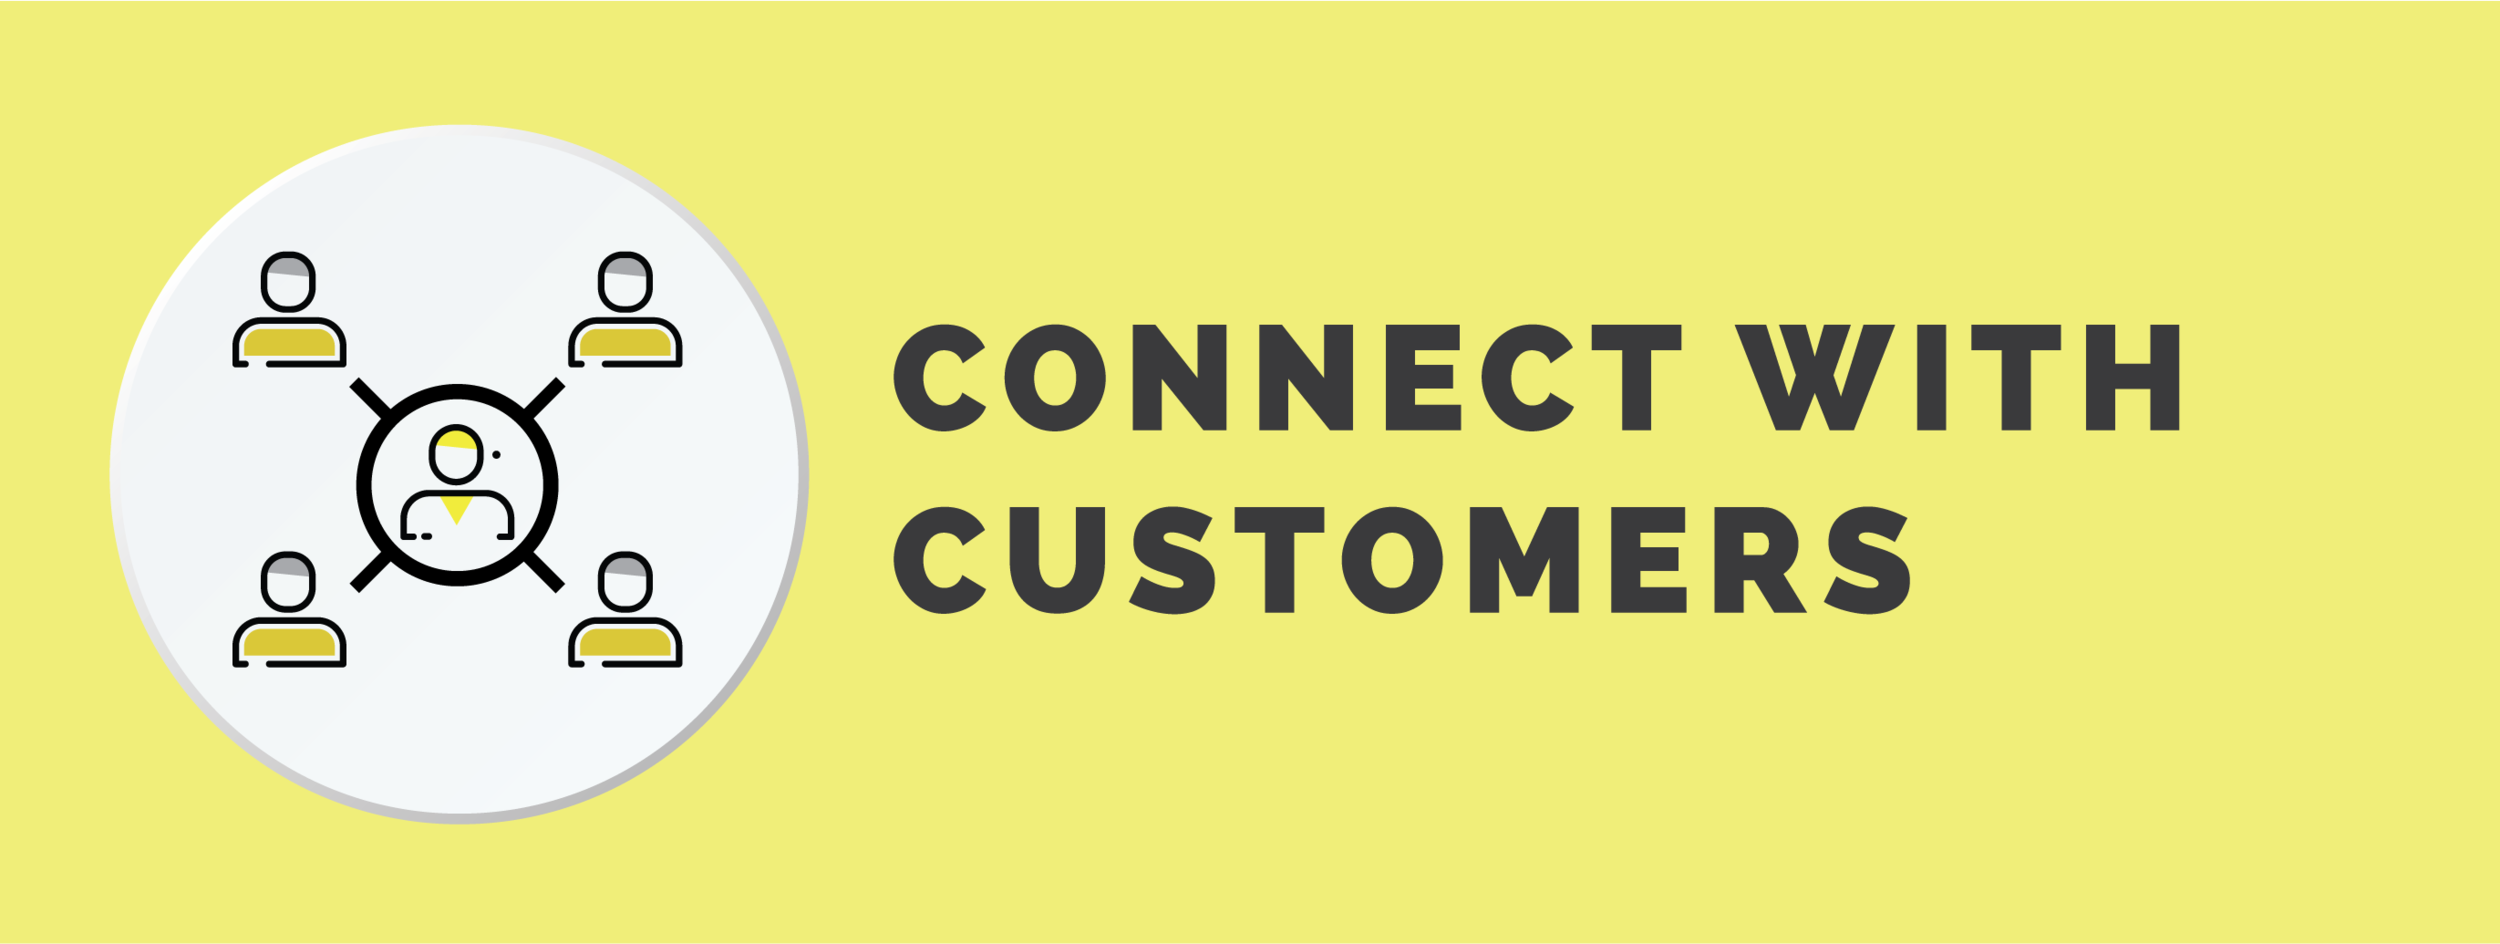 Connect with customers.